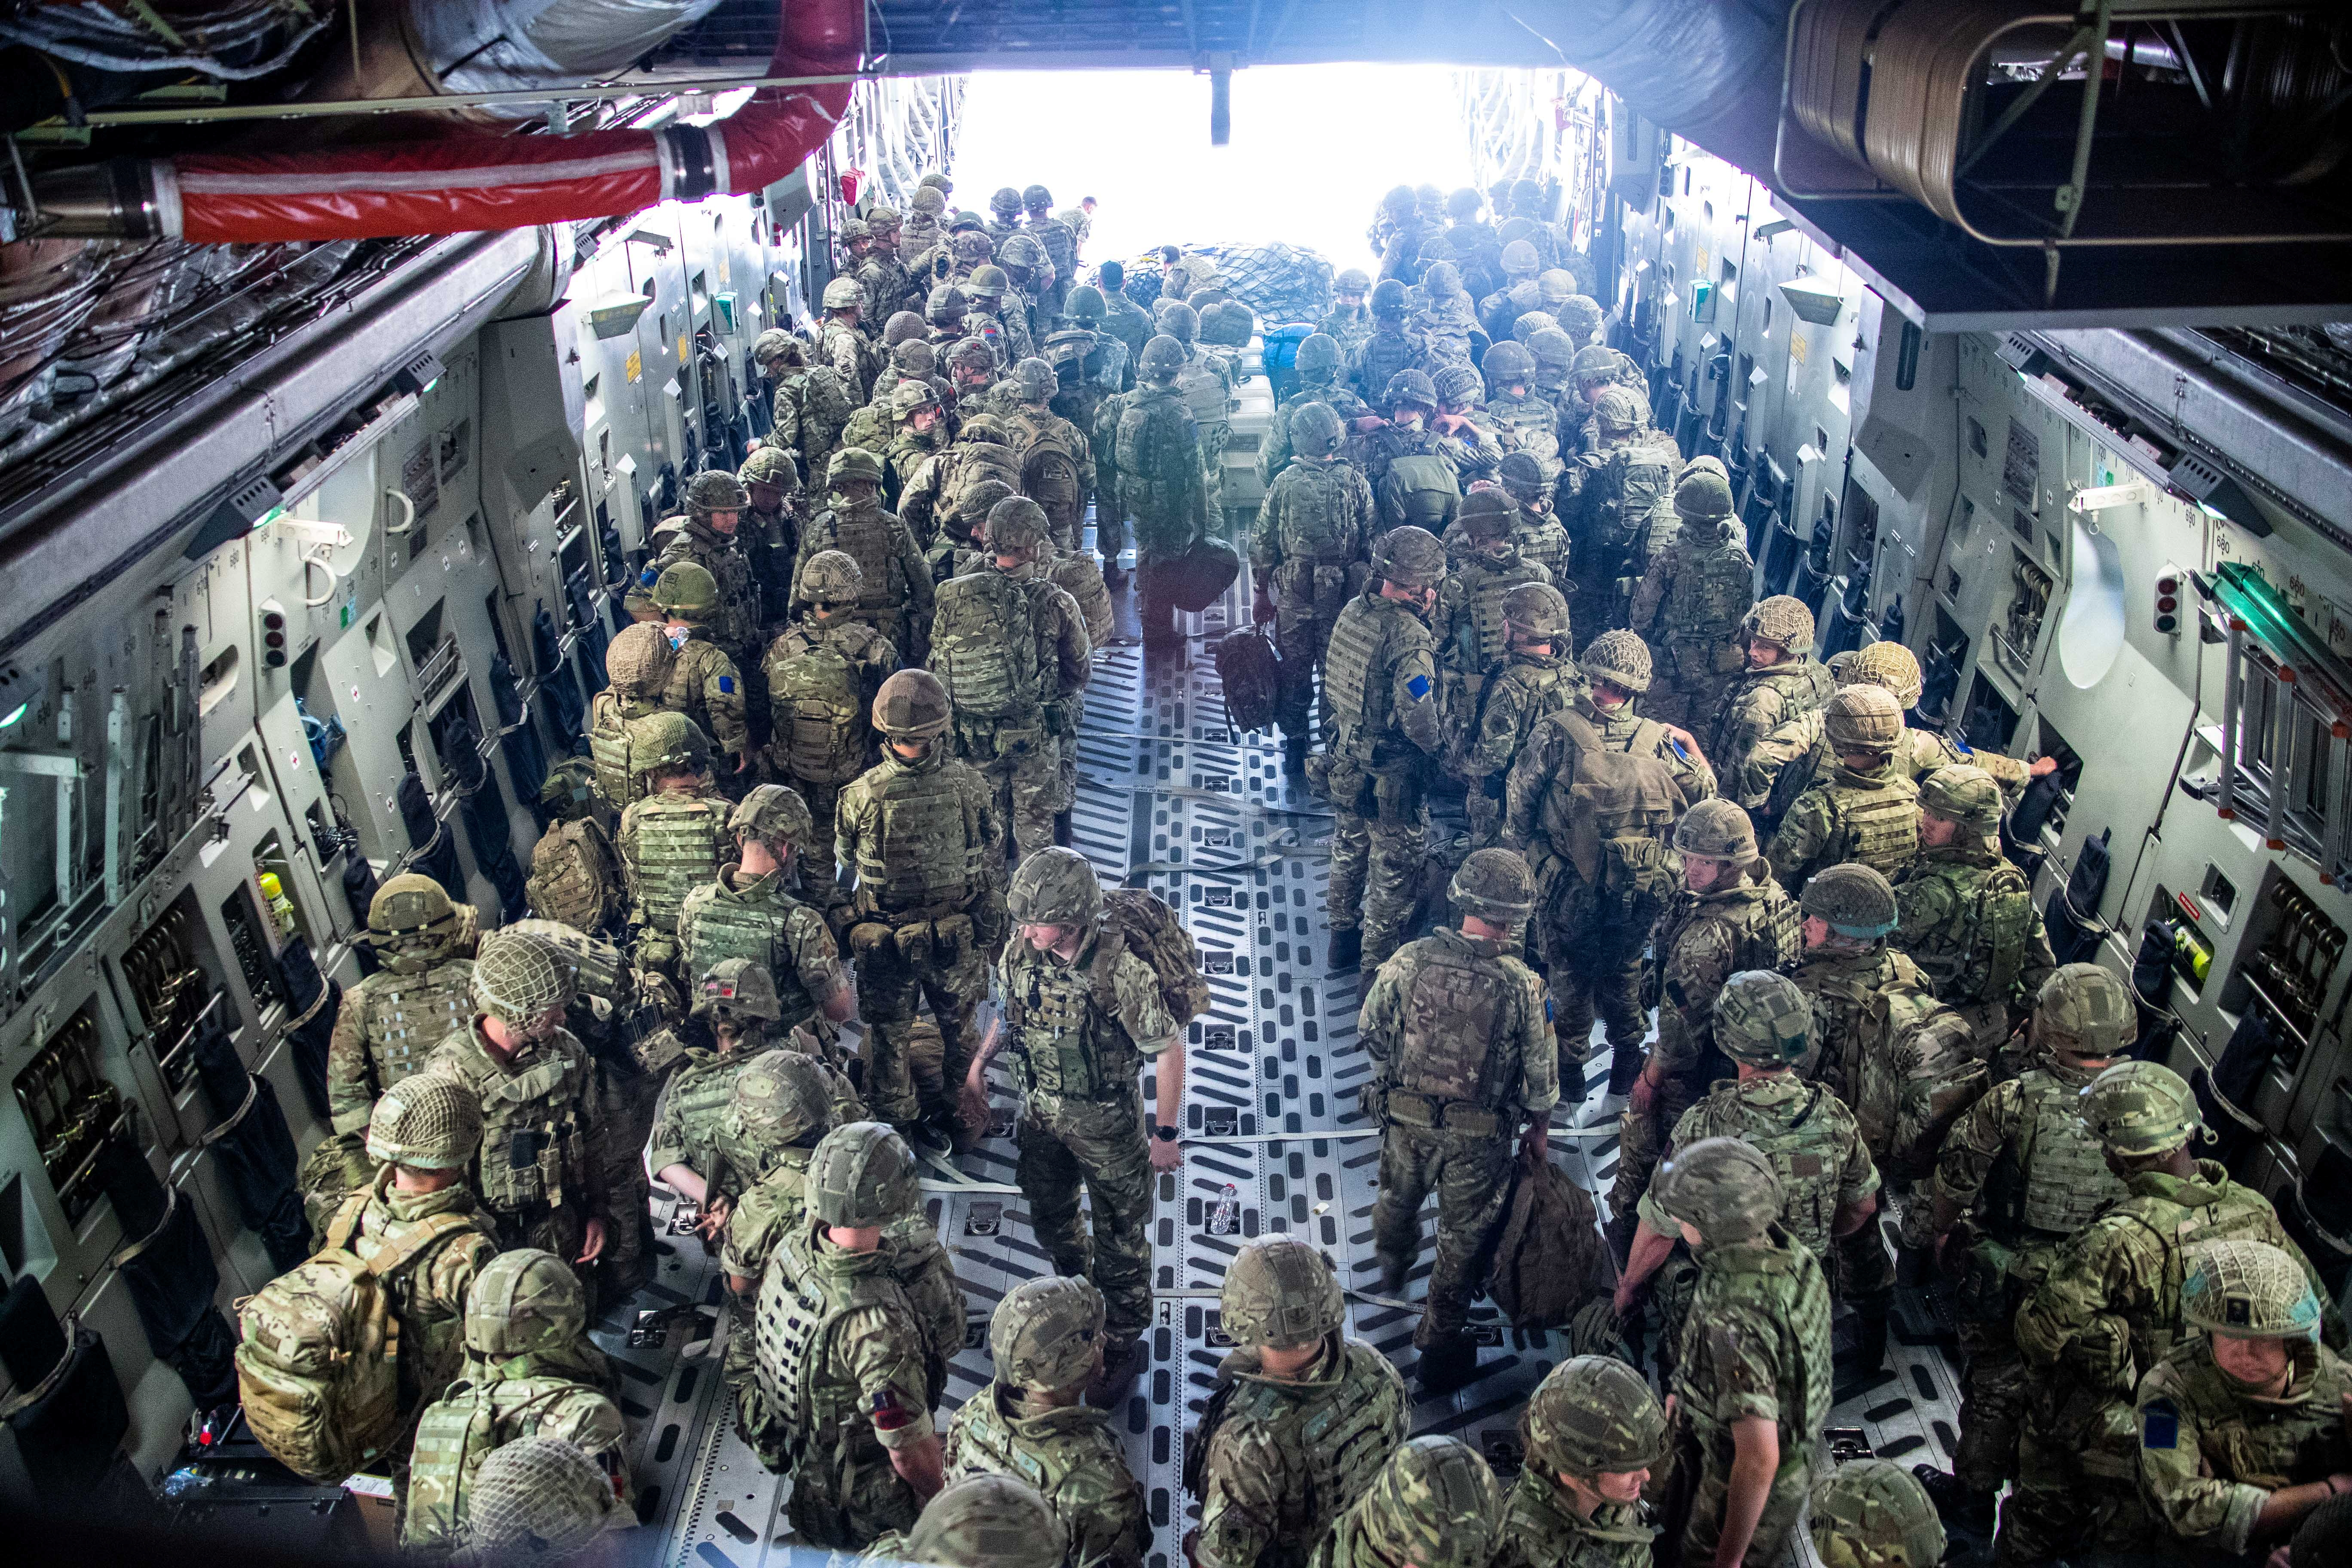 British Forces from 16 Air Assault Brigade arrive in Kabul, Afghanistan, to provide support to British nationals leaving the country, as part of Operation PITTING after Taliban insurgents took control of the presidential palace in Kabul, August 15, 2021. Leading Hand Ben Shread/RAF/UK Ministry of Defence 2021/Handout via REUTERS